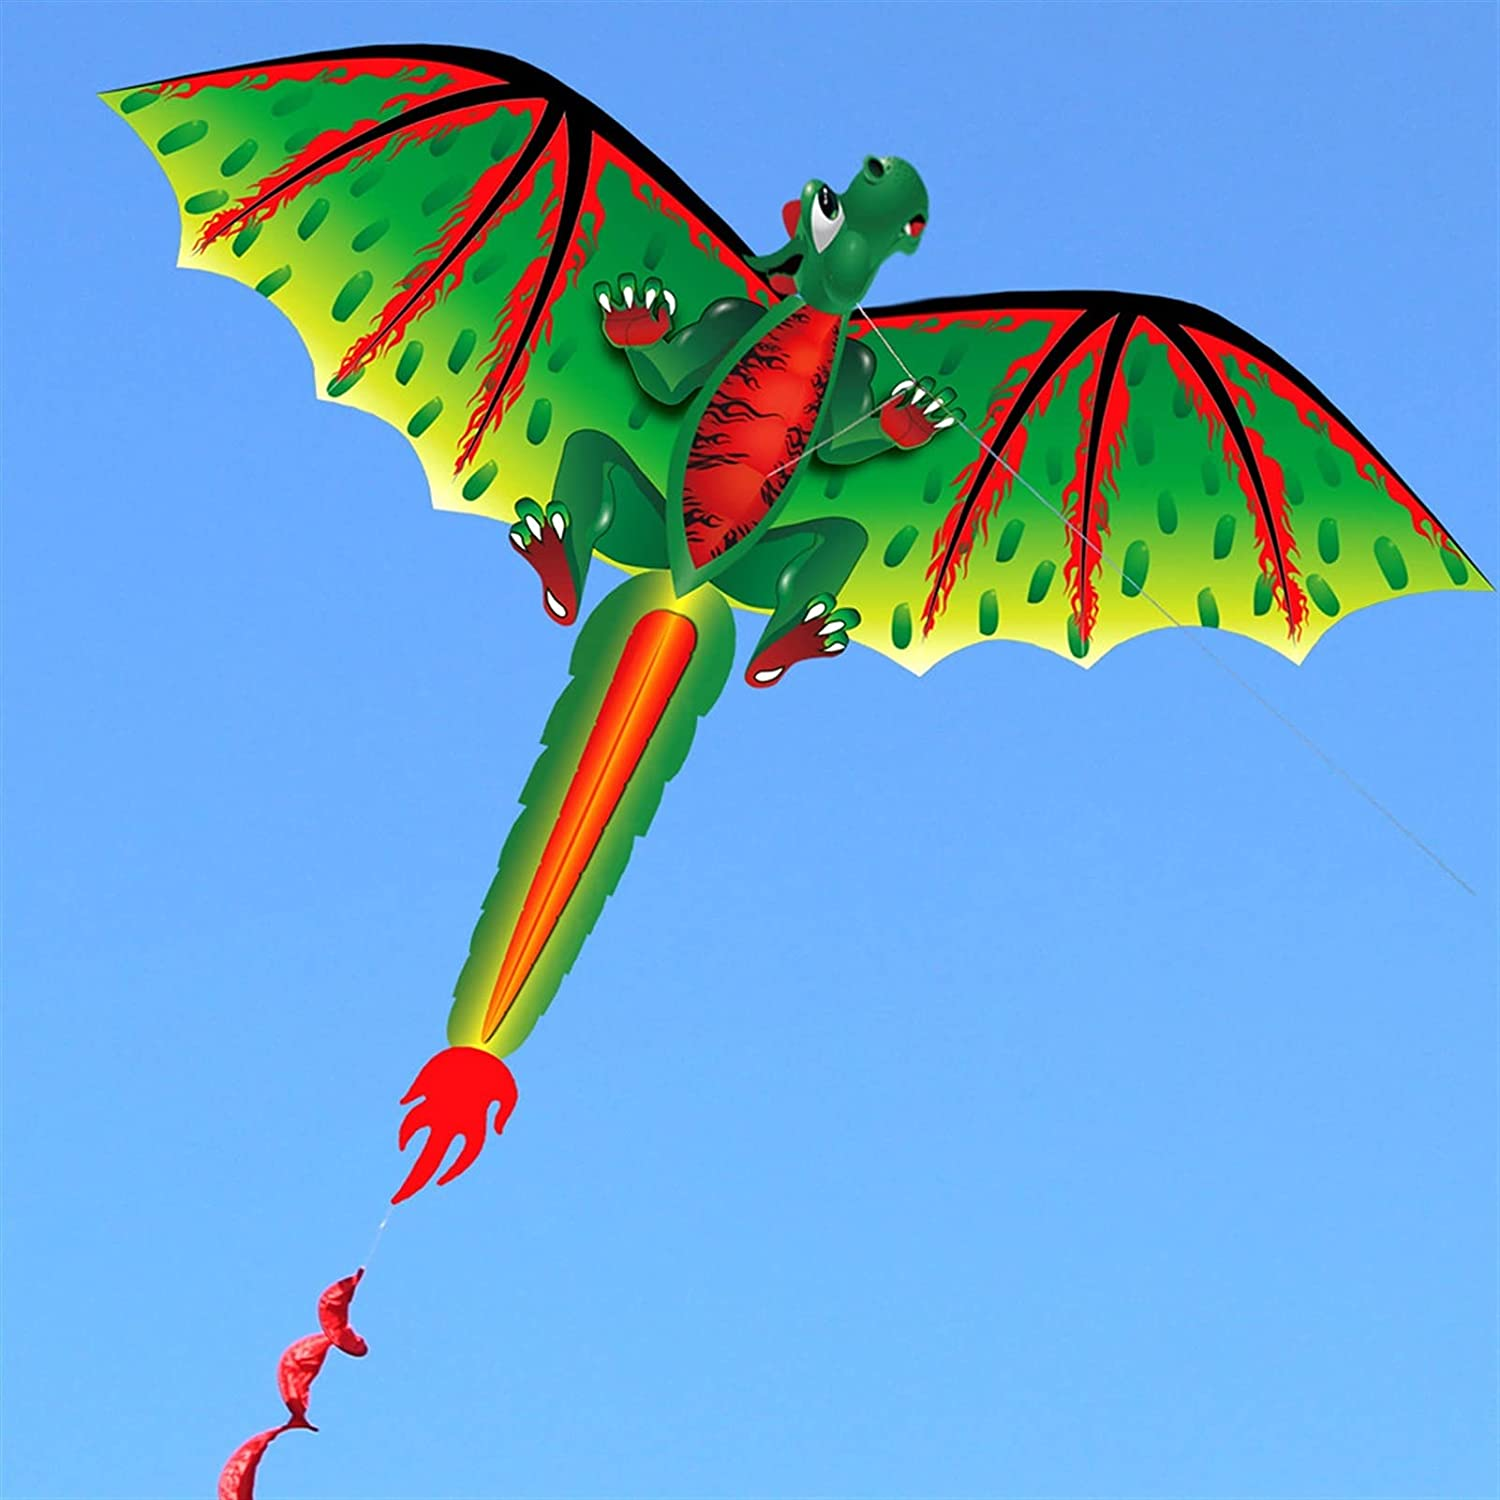 YSJJVDS Kites 3D Dragon 100M Kite K Sale special price Flying with Attention brand Tail Single Line